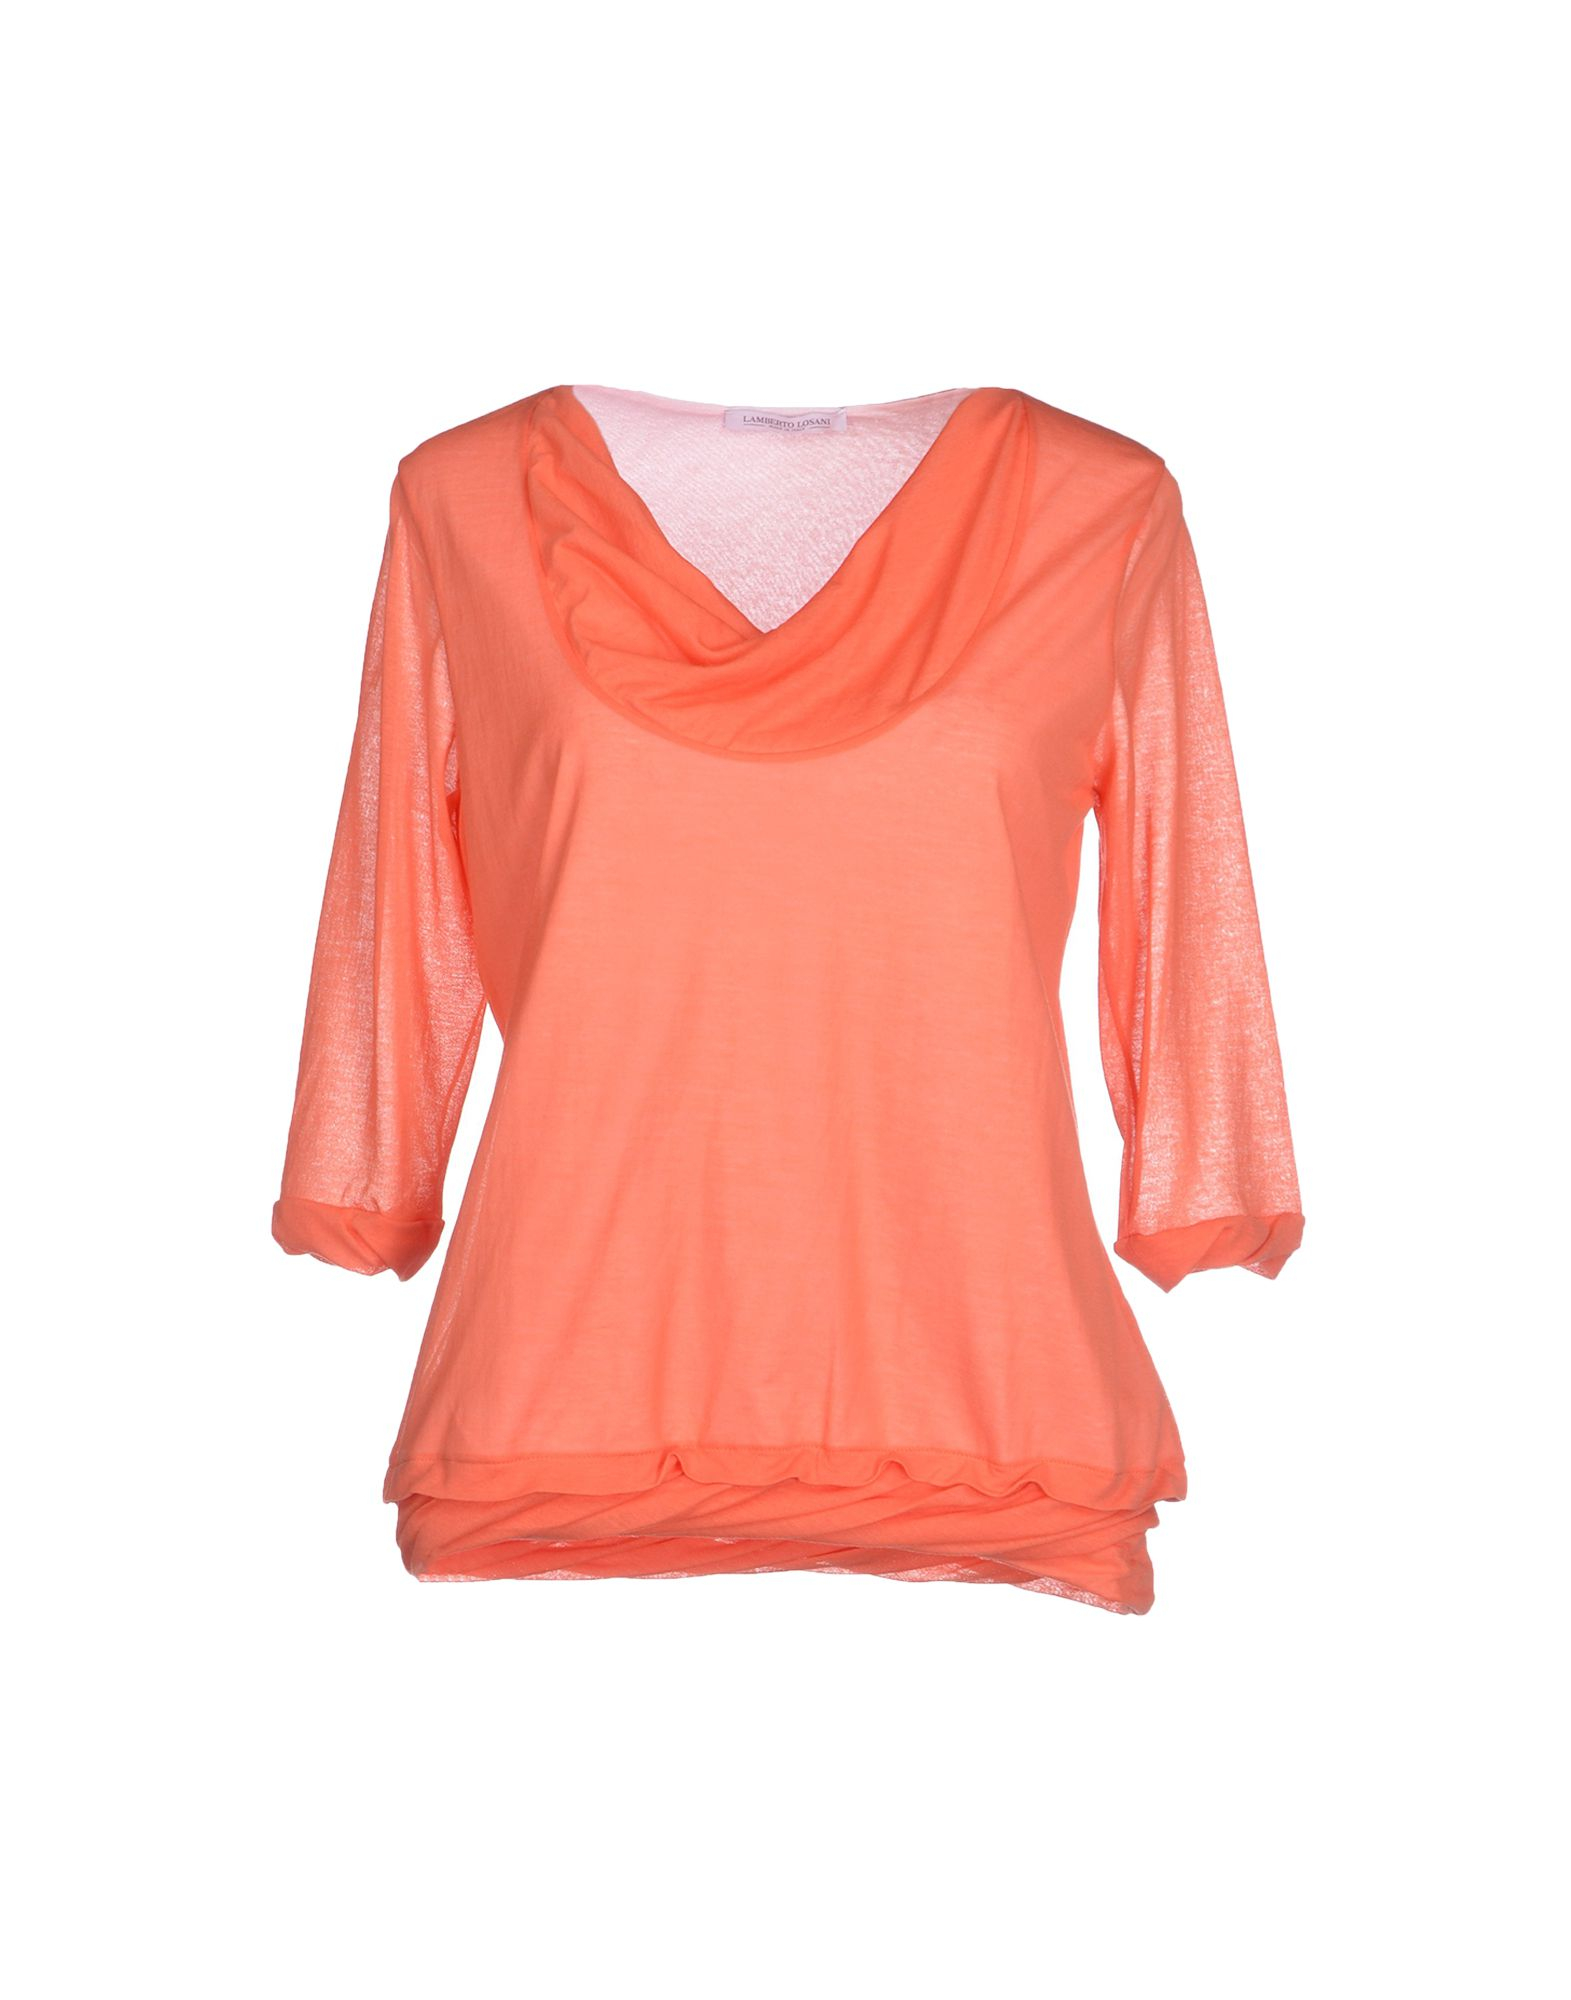 Cloverleaf Home Interiors Salmon Colored Shirt 28 Images 59 Enti Tops Salmon